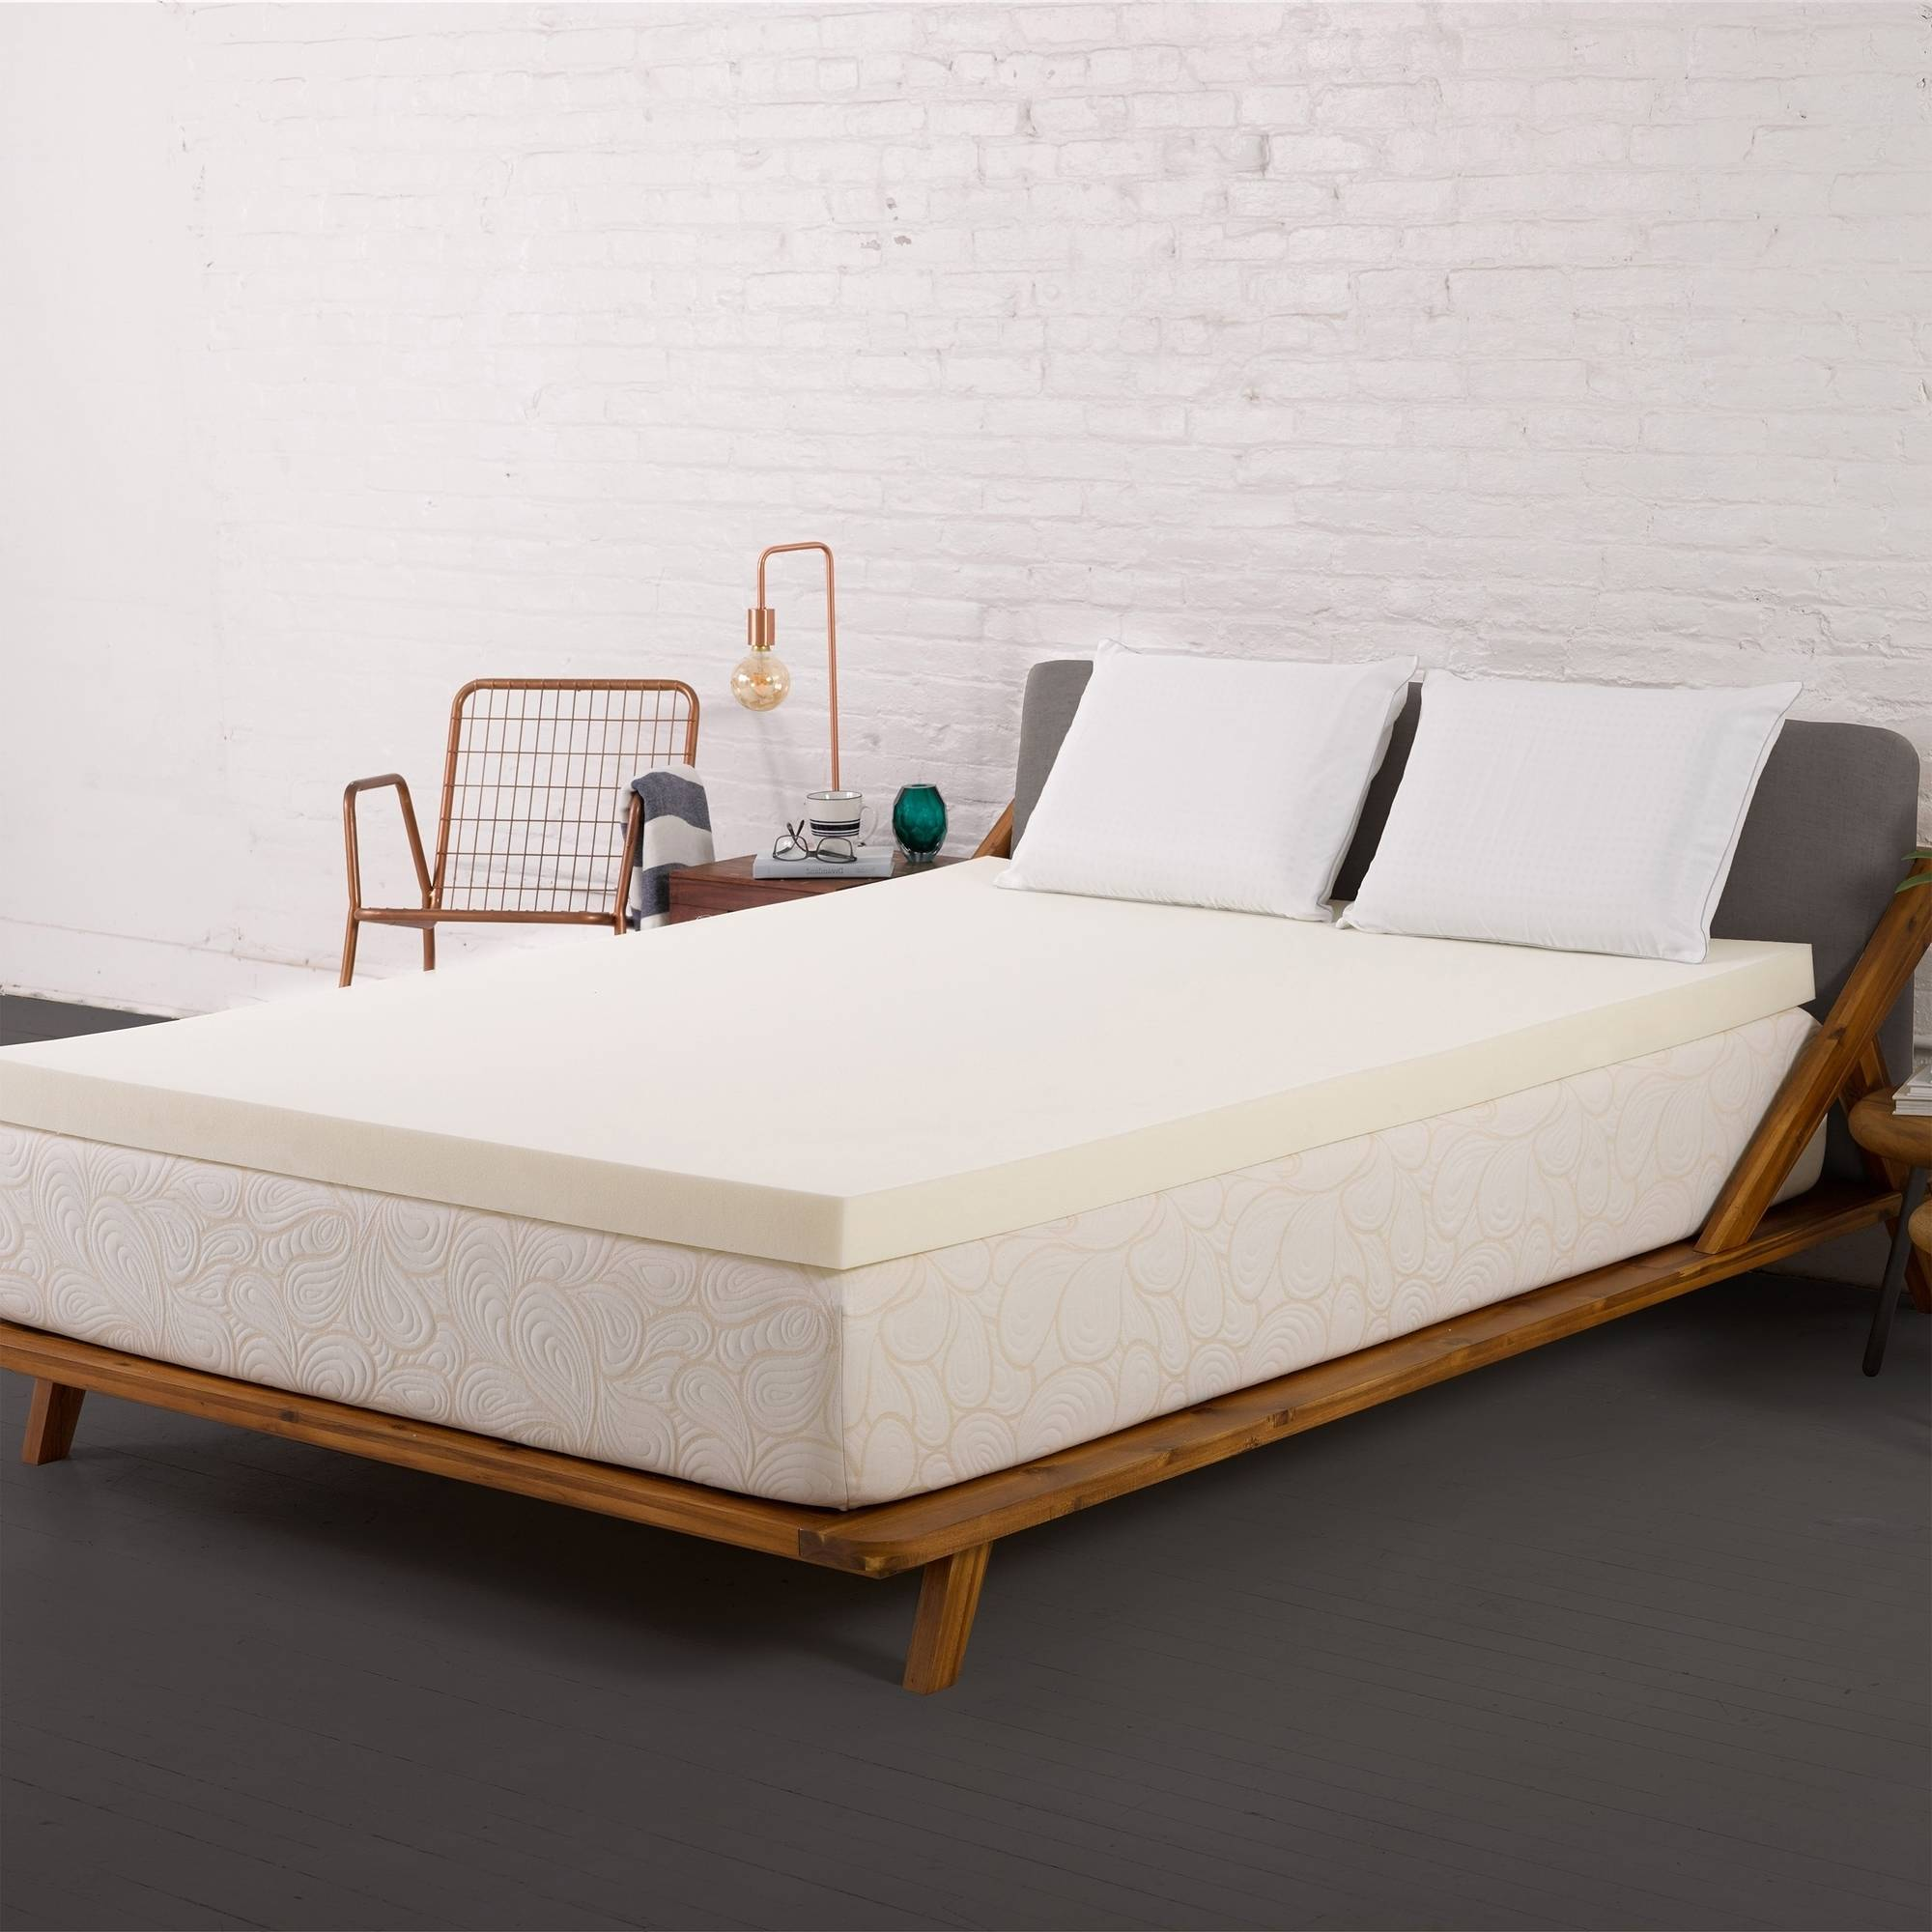 Authentic-Comfort-Memory-Foam-Mattress-Topper-Biofresh-Cooling-